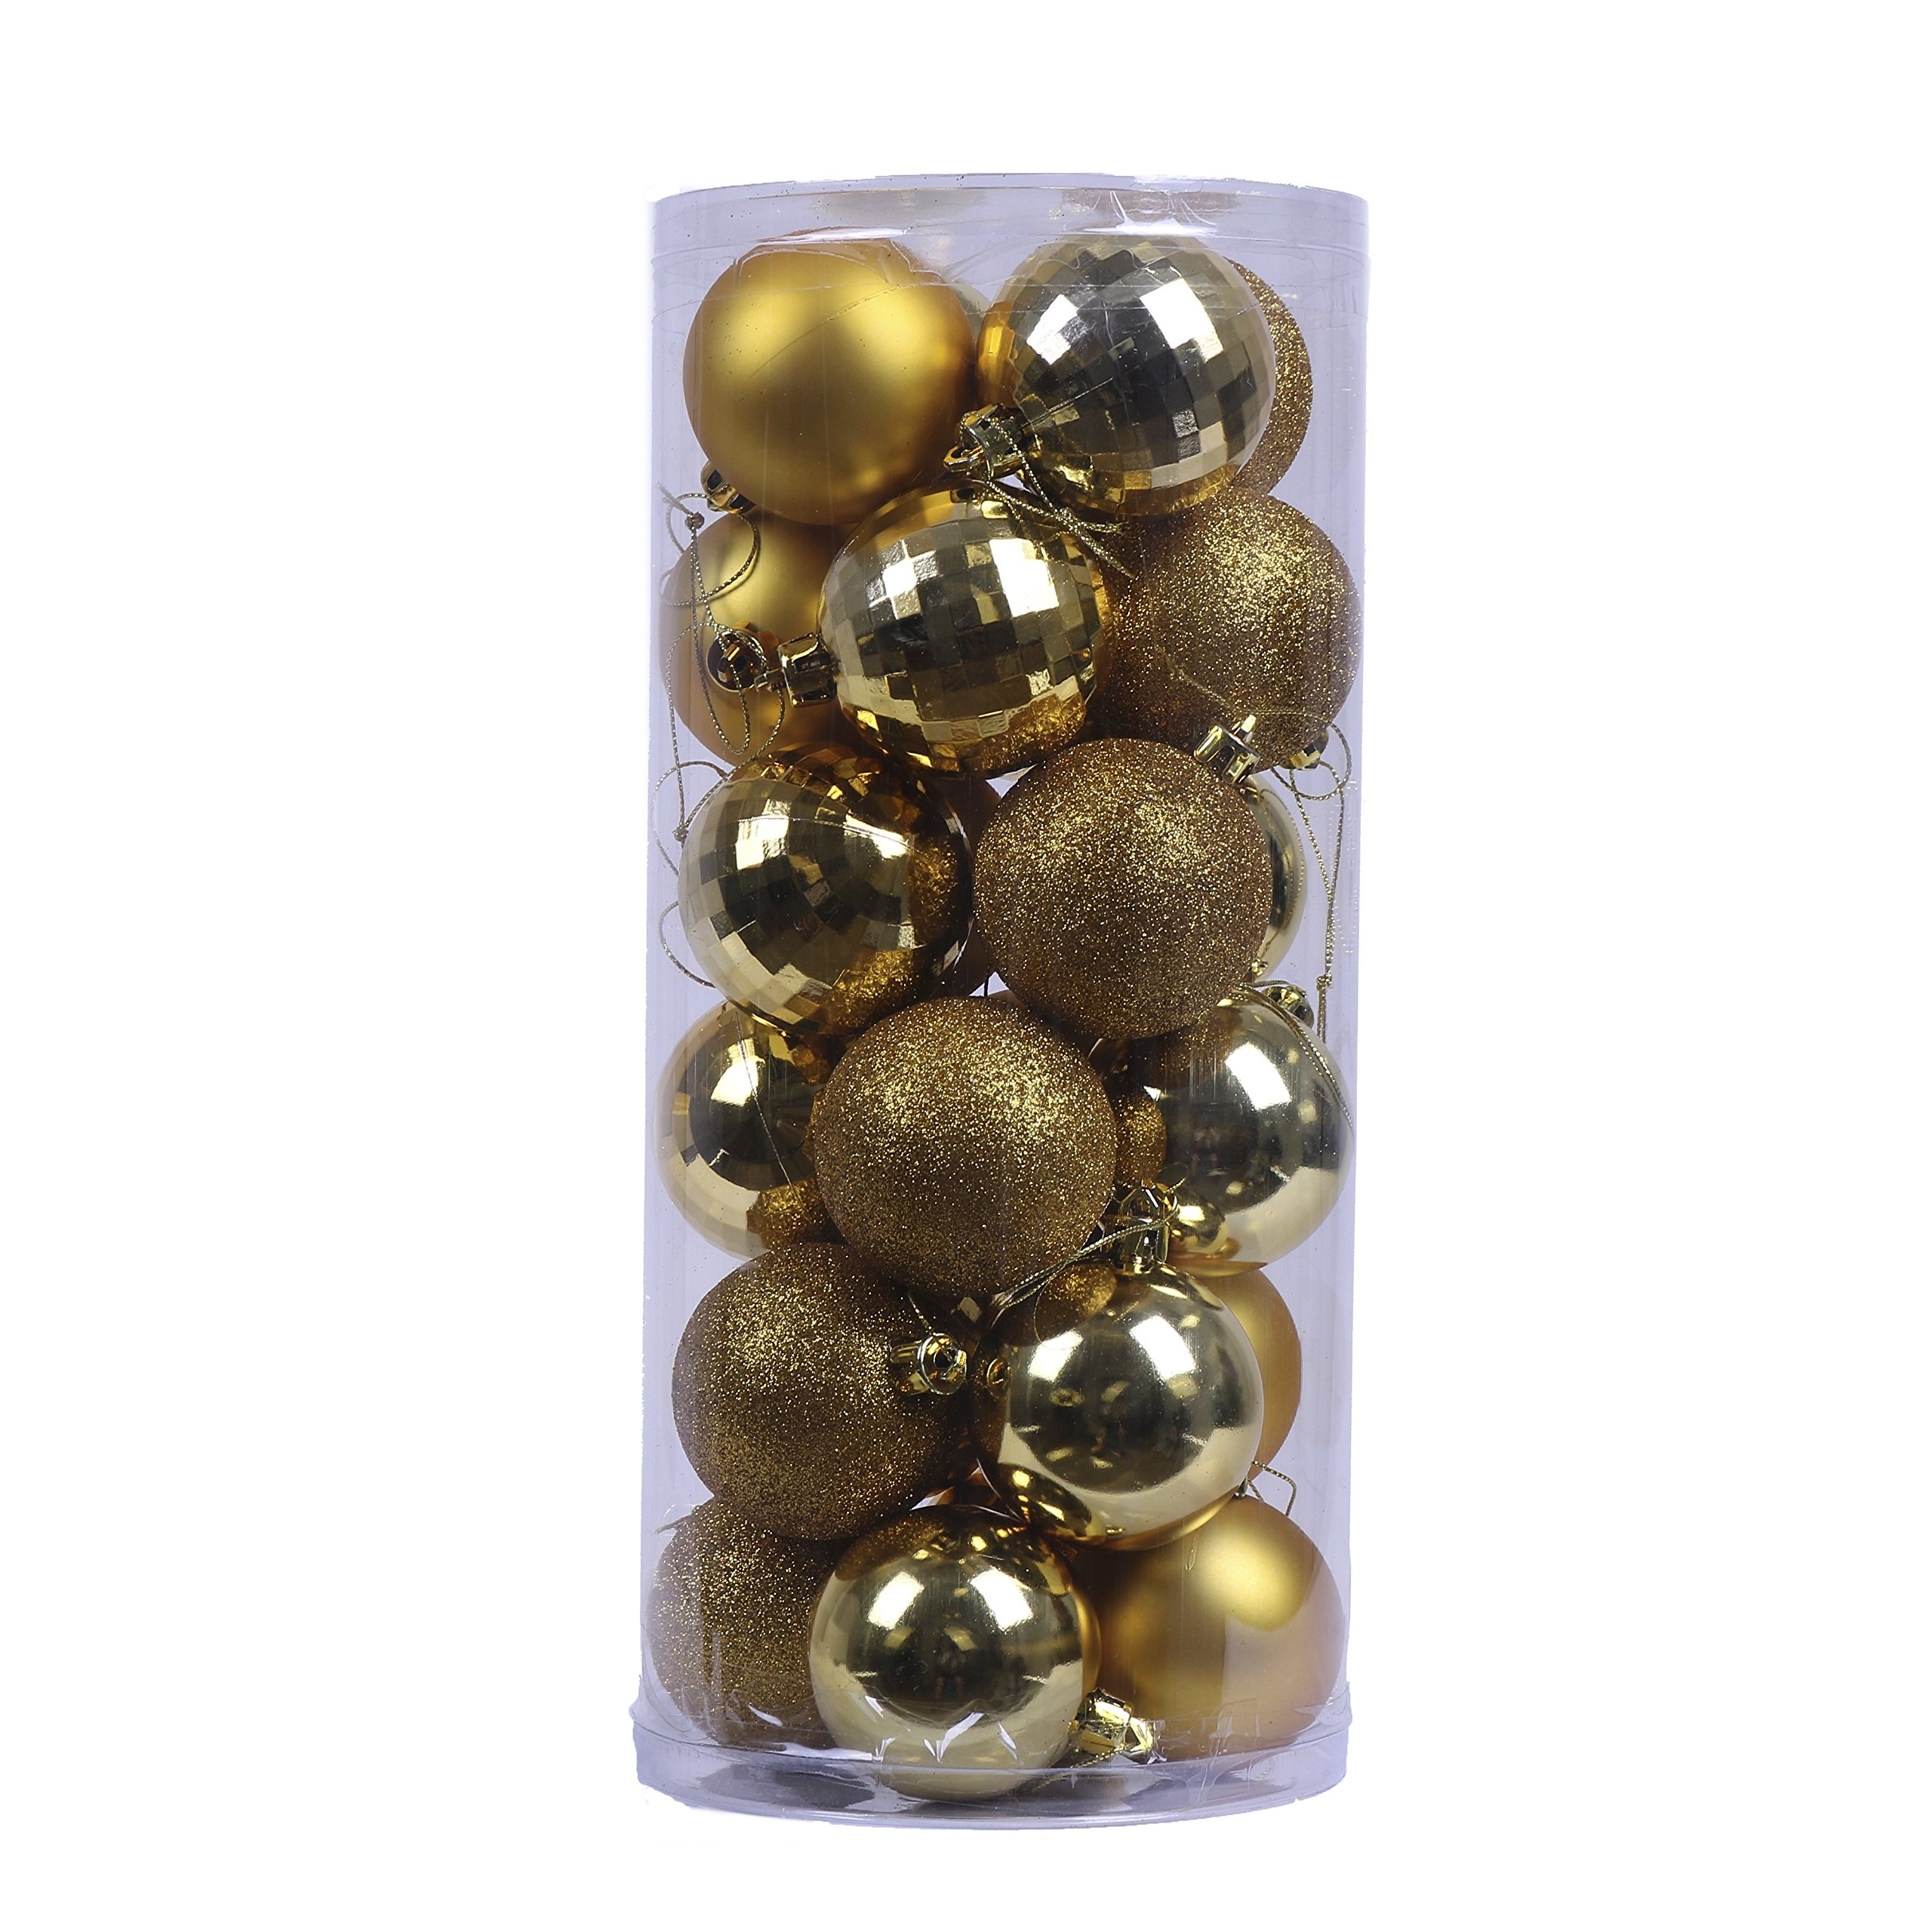 V&M VALERY MADELYN 24ct Christmas Ball Ornaments Shatterproof Christmas Tree Decorative Balls For Holiday, 2.36inch/6CM Hanging Ornament With String Pre-Tied (Essential, Gold)